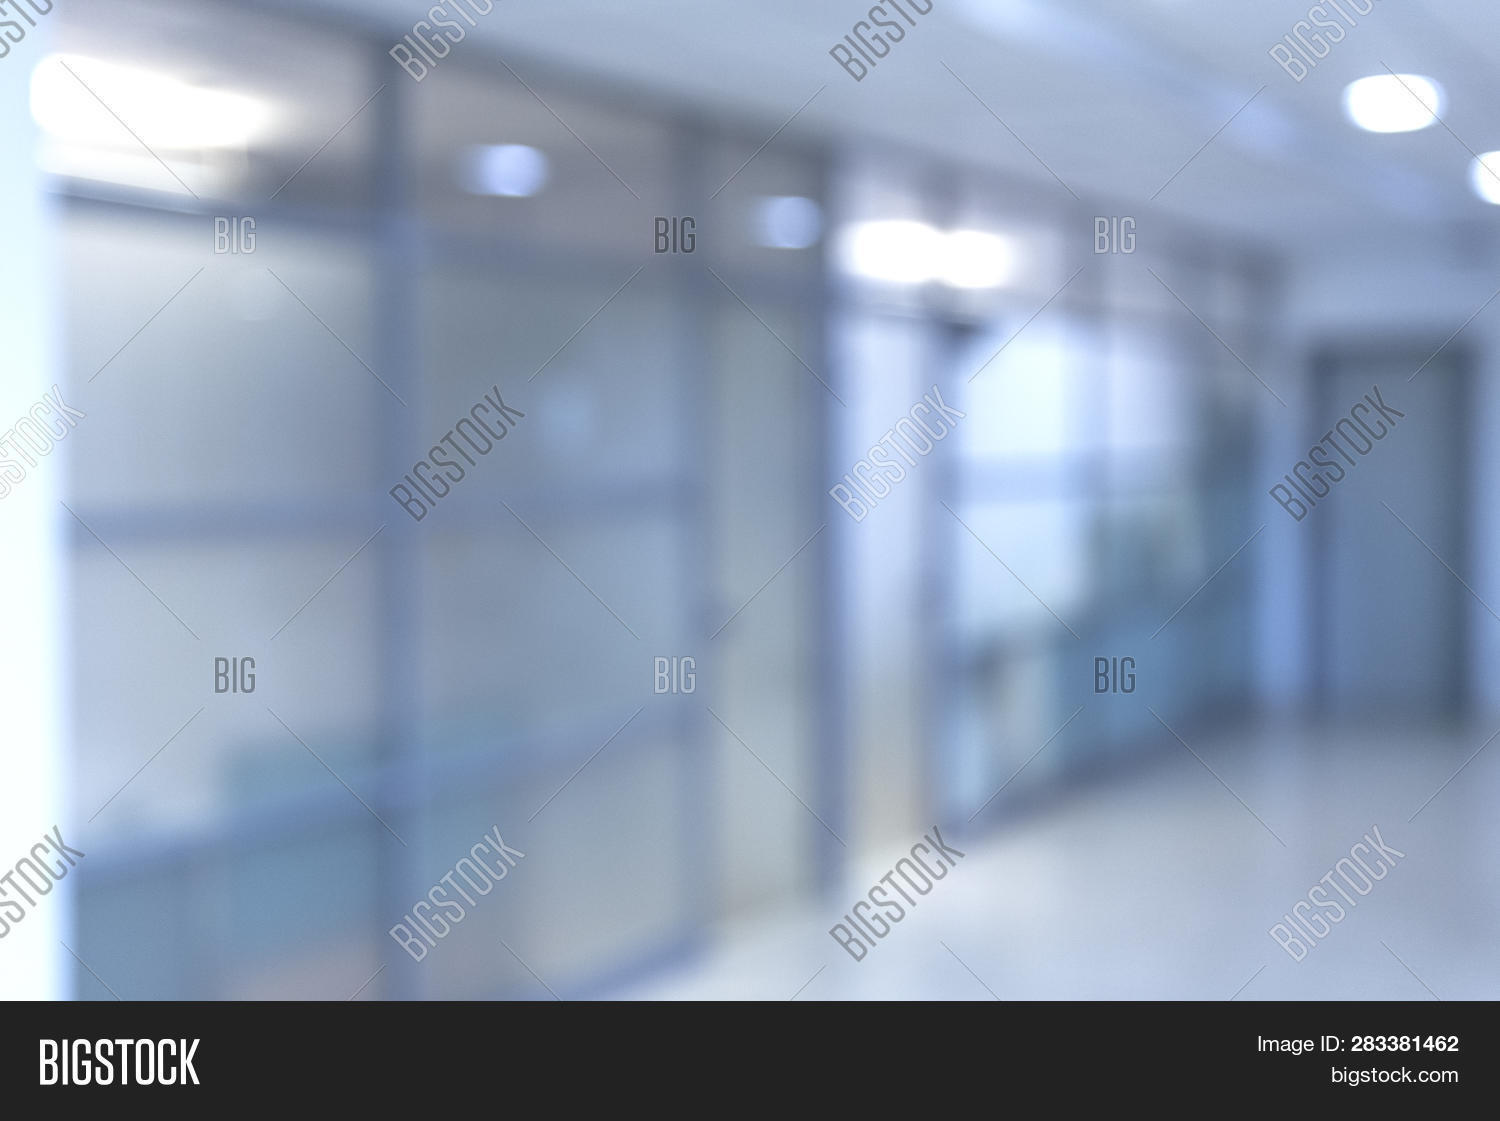 Blurred Office Image Photo Free Trial Bigstock